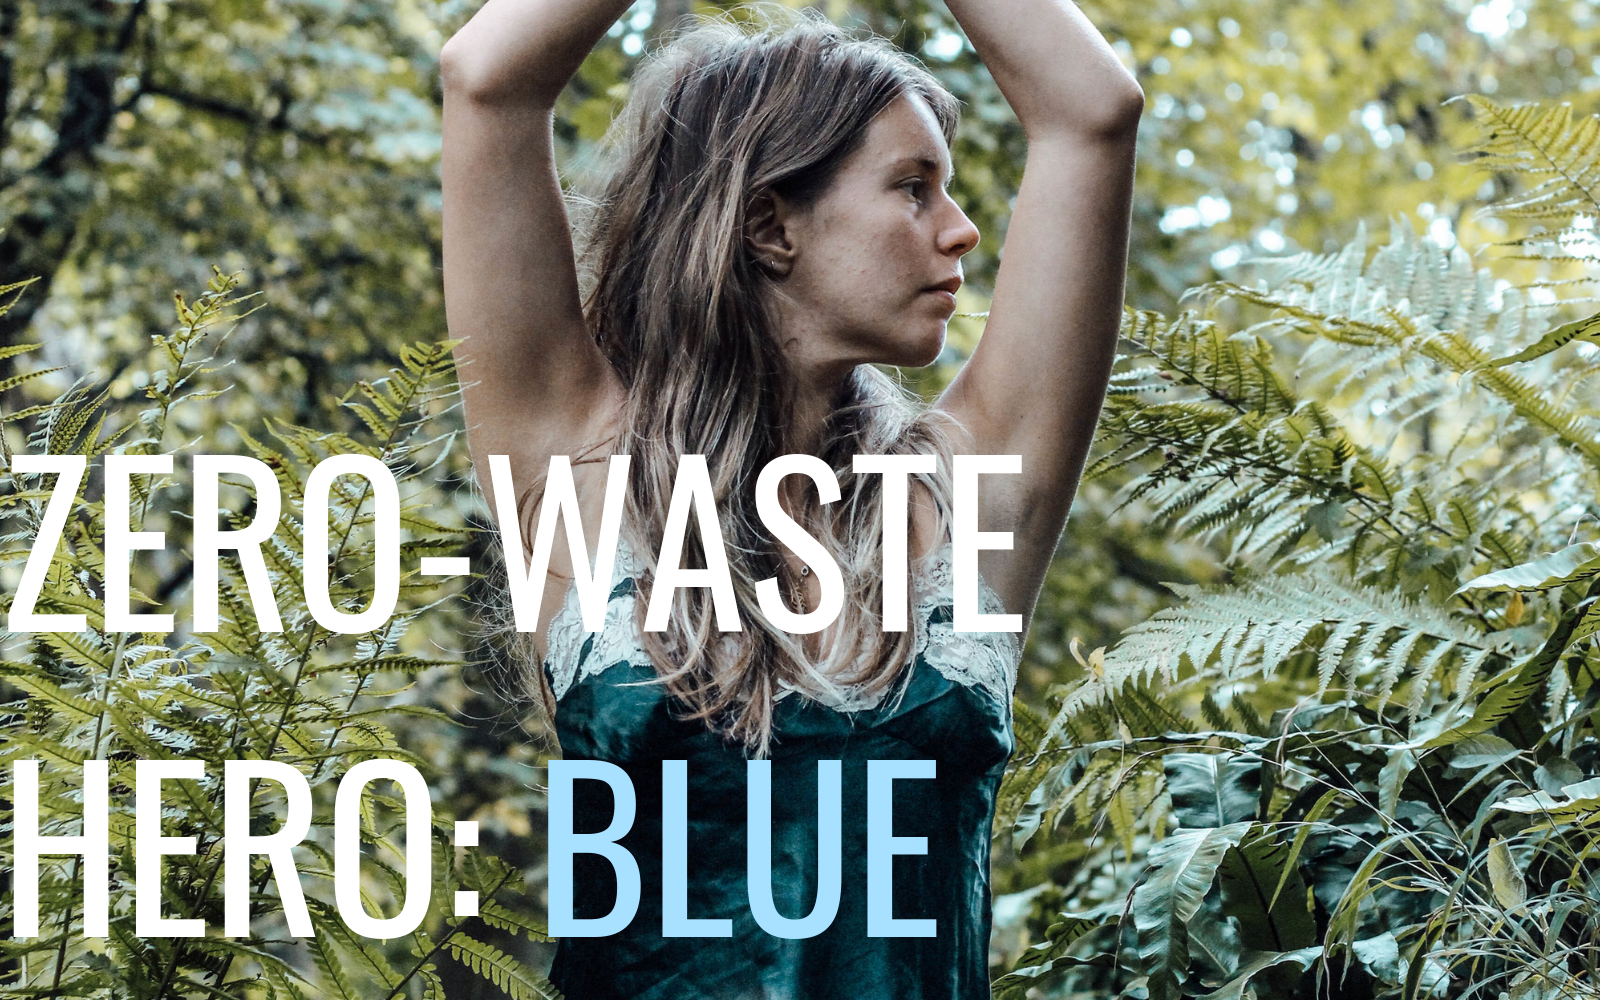 Zero-Waste Hero: An interview with Blue Ollis